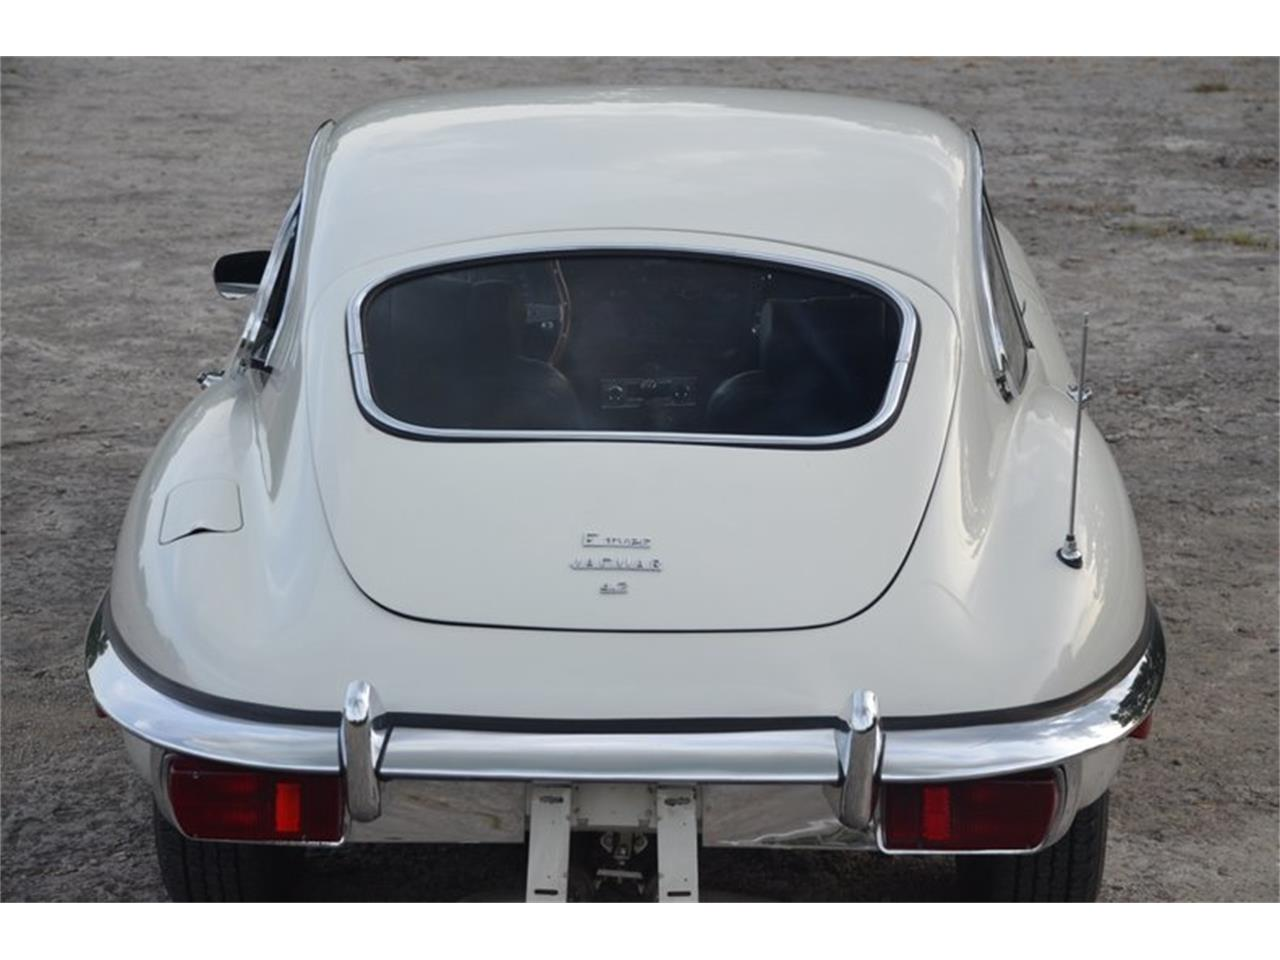 Large Picture of '71 Jaguar E-Type located in Lebanon Tennessee - $52,000.00 - OBGE